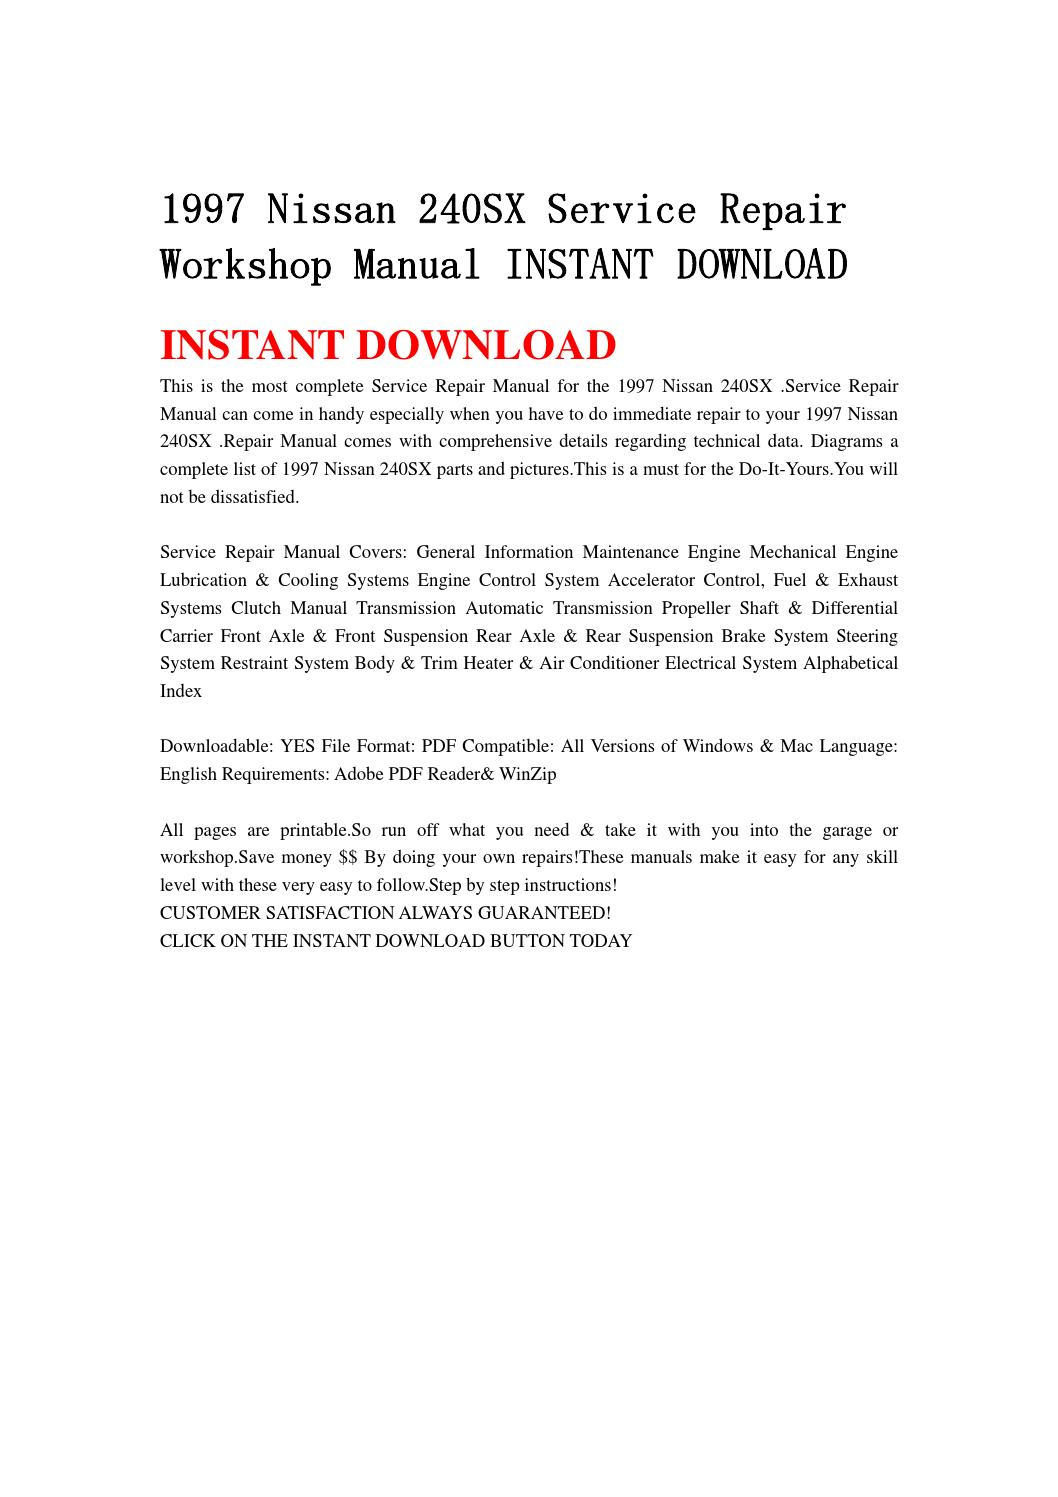 1997 nissan 240sx service repair workshop manual instant download by  ksjfhjse - issuu